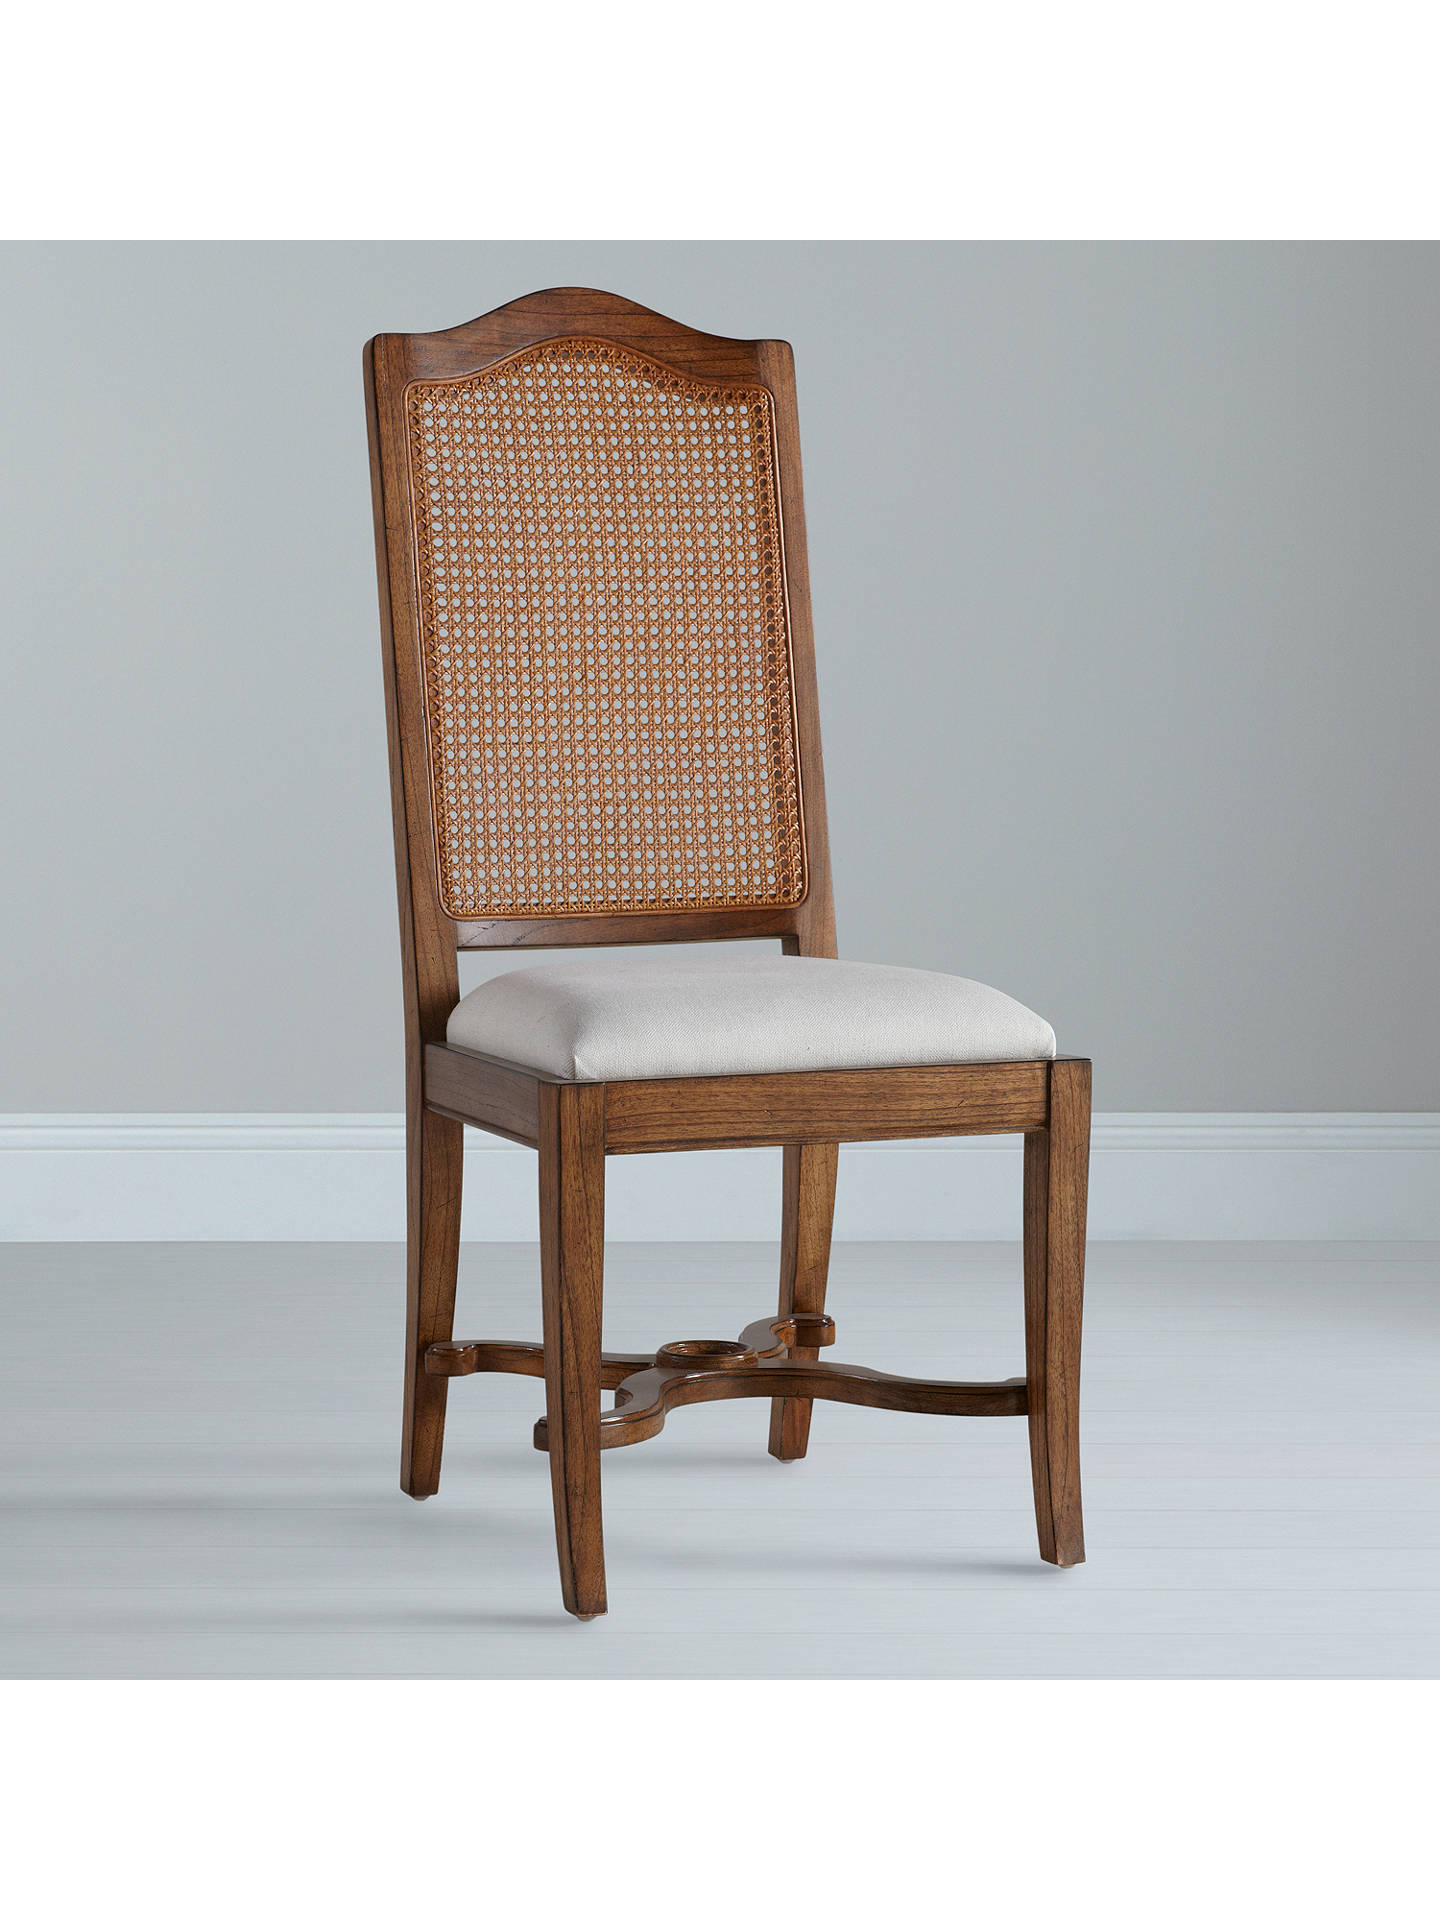 French Carver Chair Dining Chair Upholstered Dining Chair FREE Delivery with BIN